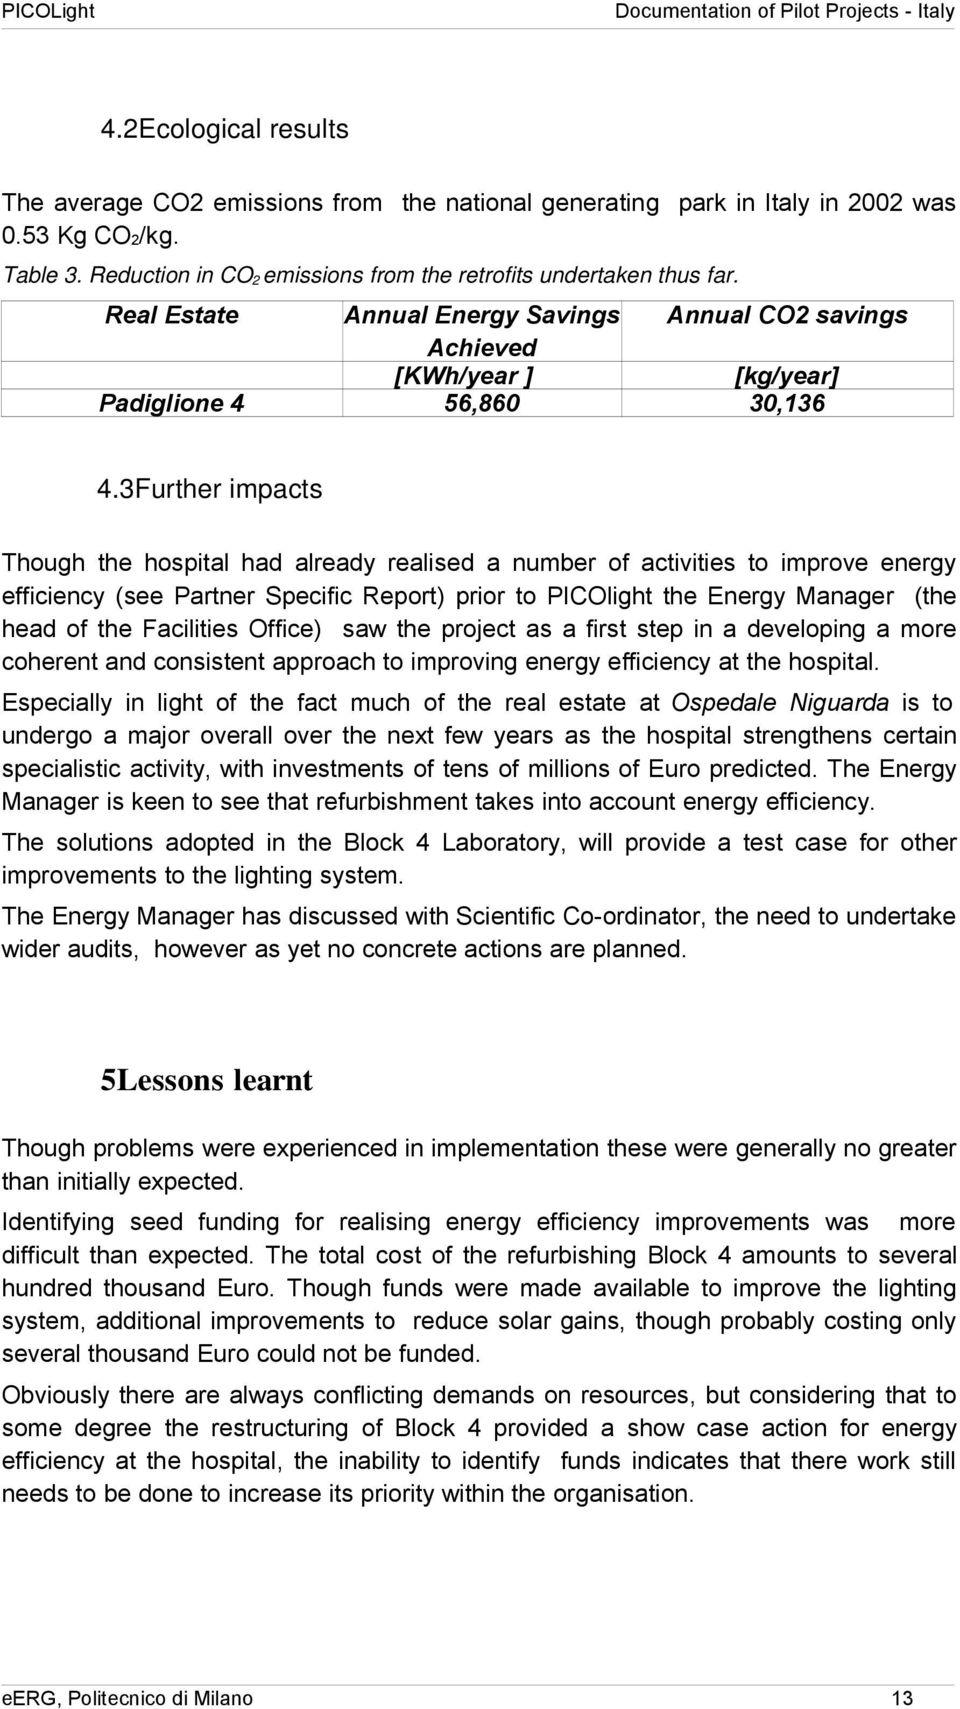 3Further impacts Though the hospital had already realised a number of activities to improve energy efficiency (see Partner Specific Report) prior to PICOlight the Energy Manager (the head of the